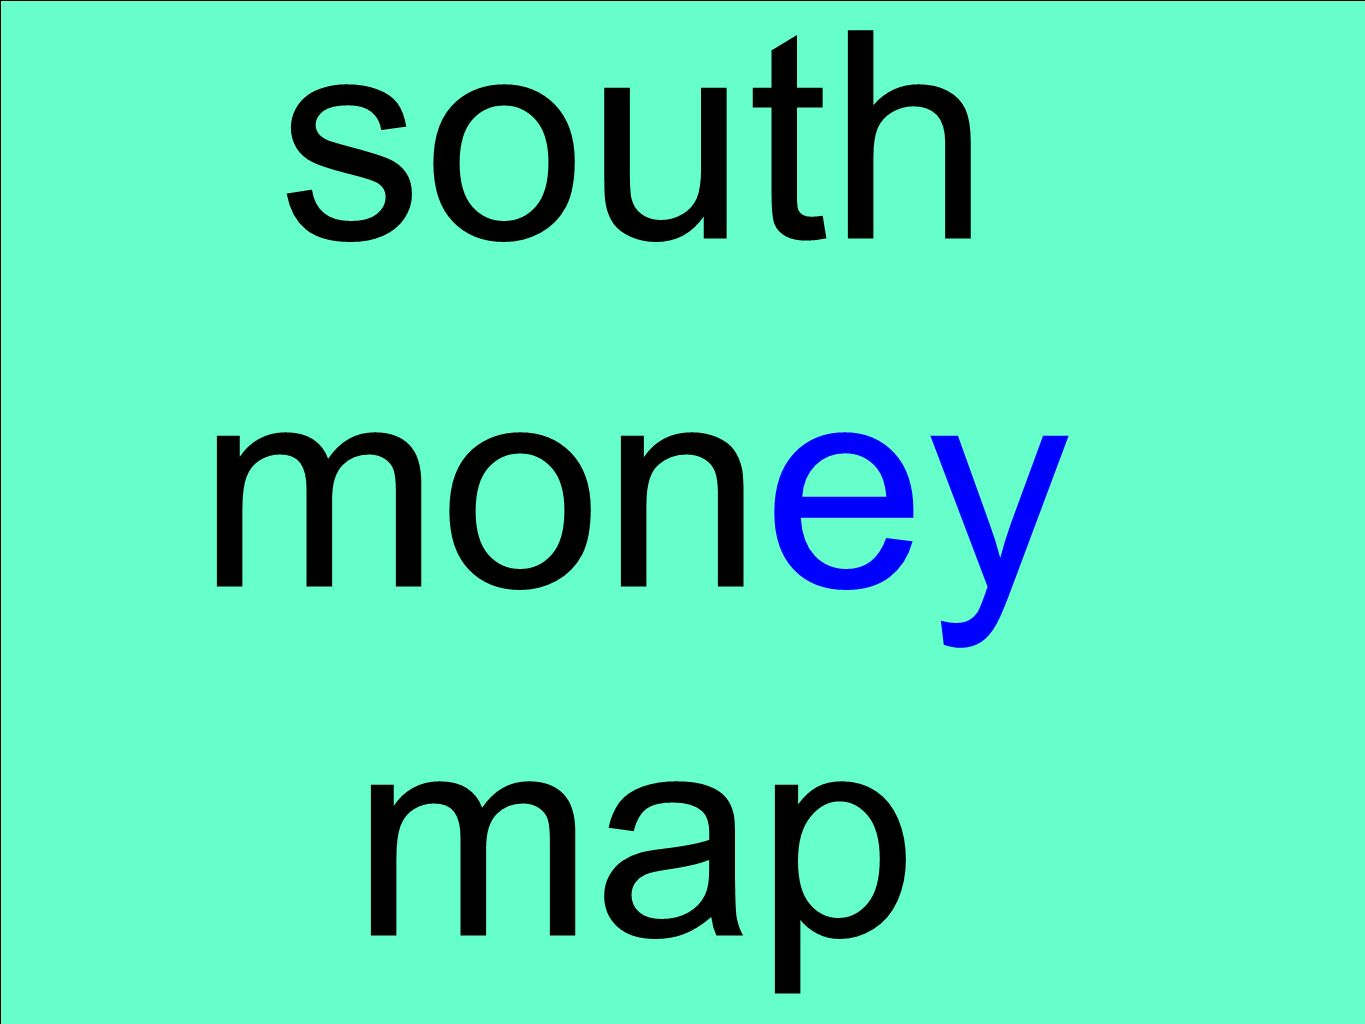 south money map